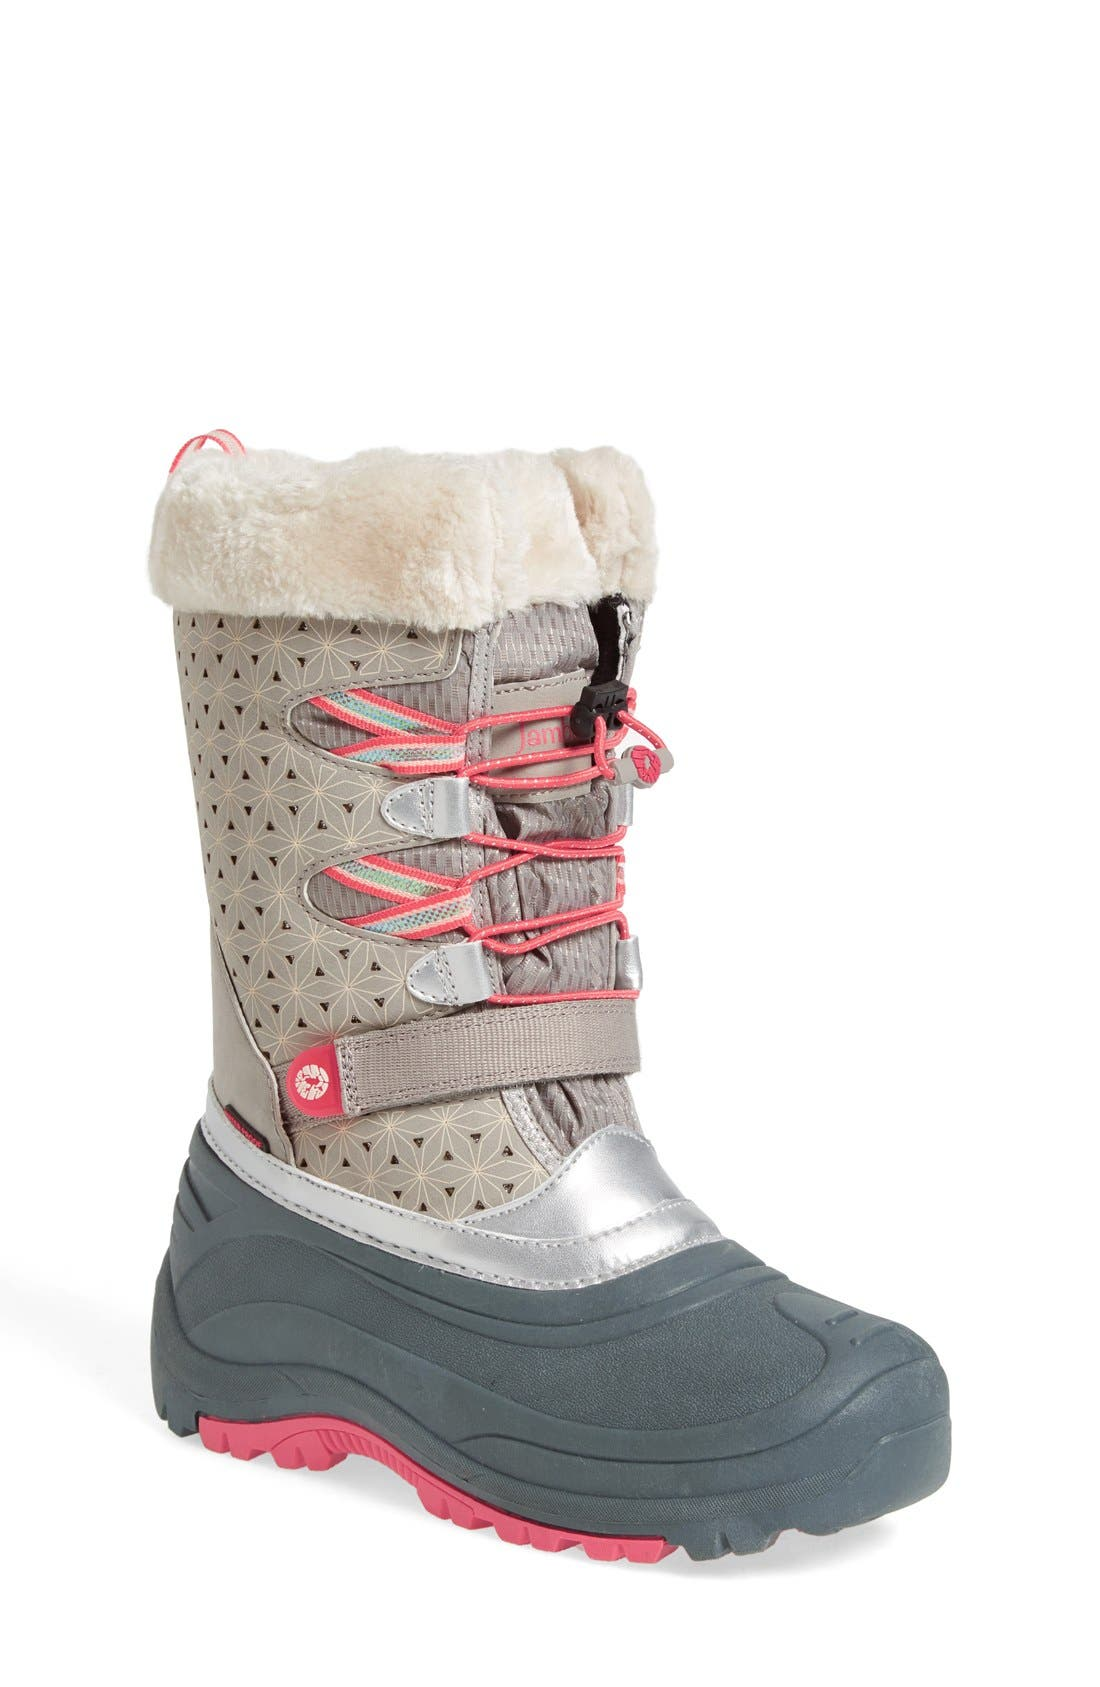 'Venom' Waterproof Insulated Snow Boot,                         Main,                         color, Grey/ Pink